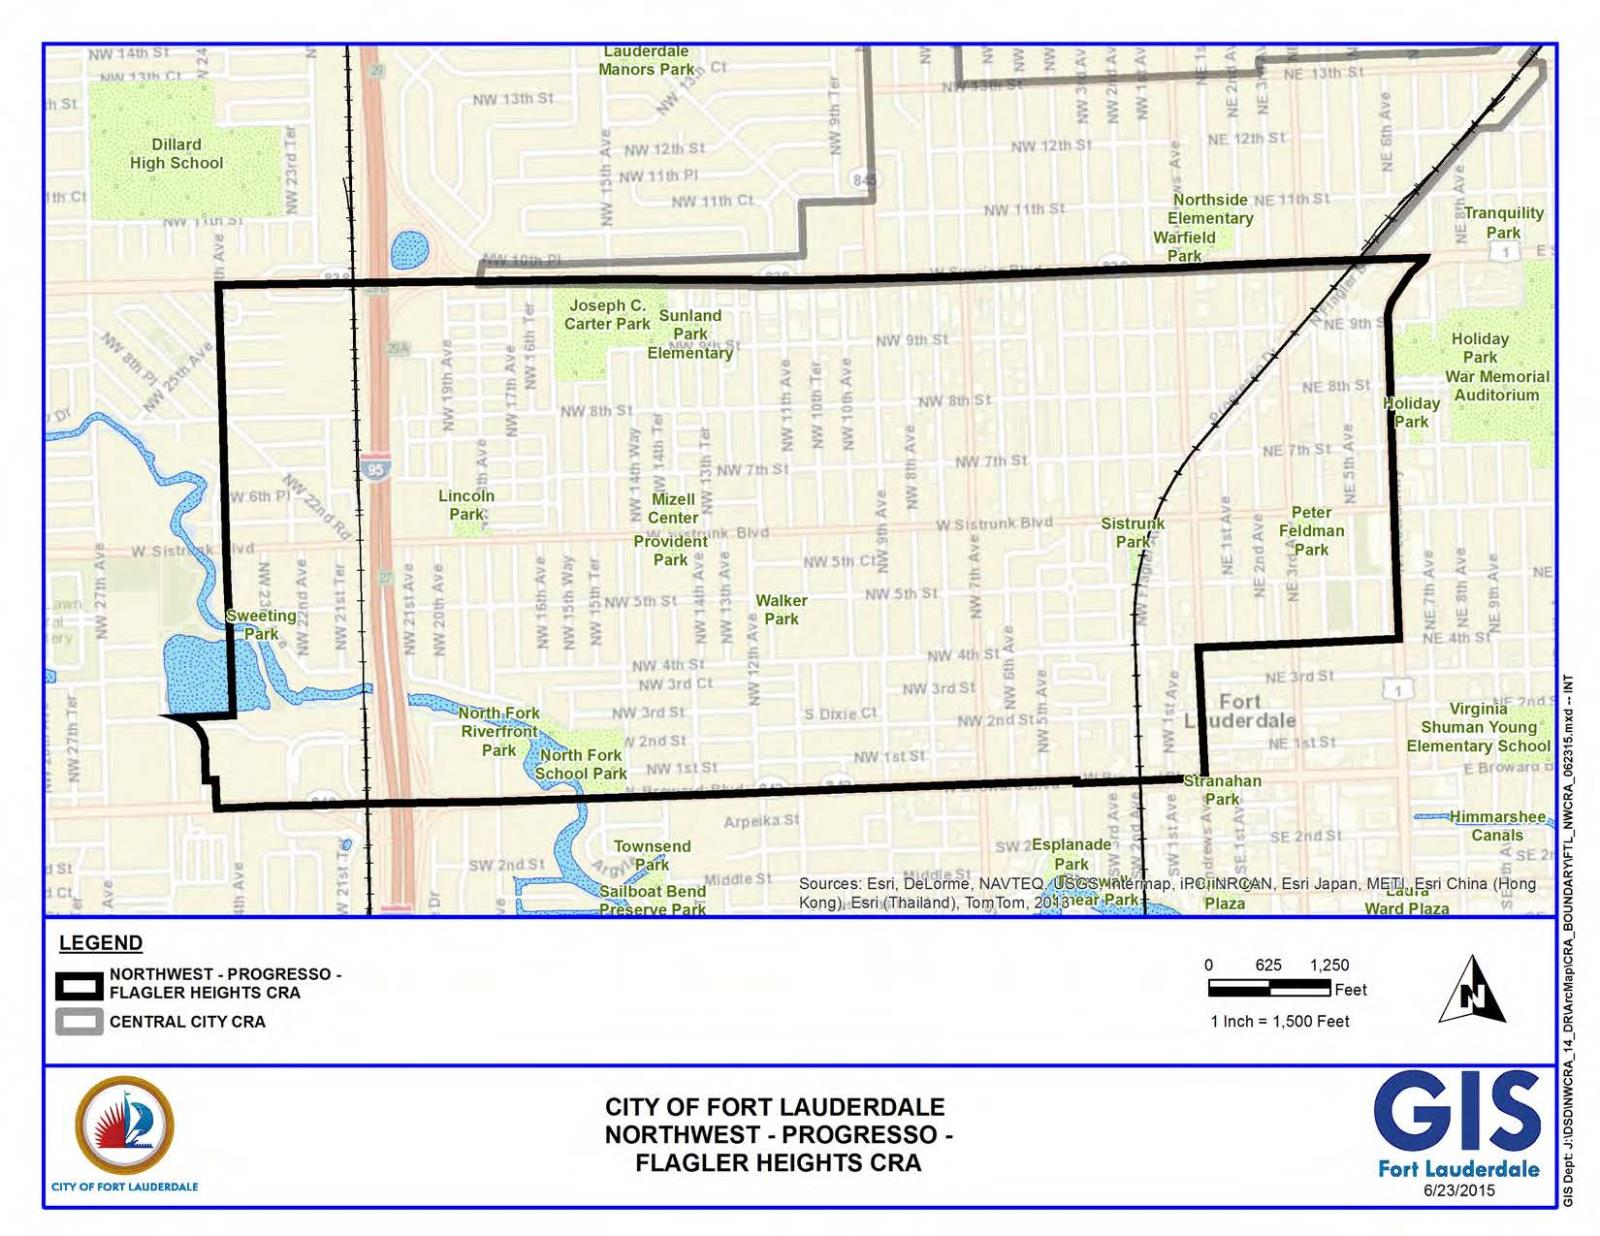 Map Of Fort Lauderdale Florida.City Of Fort Lauderdale Fl Npf Cra Boundary Map